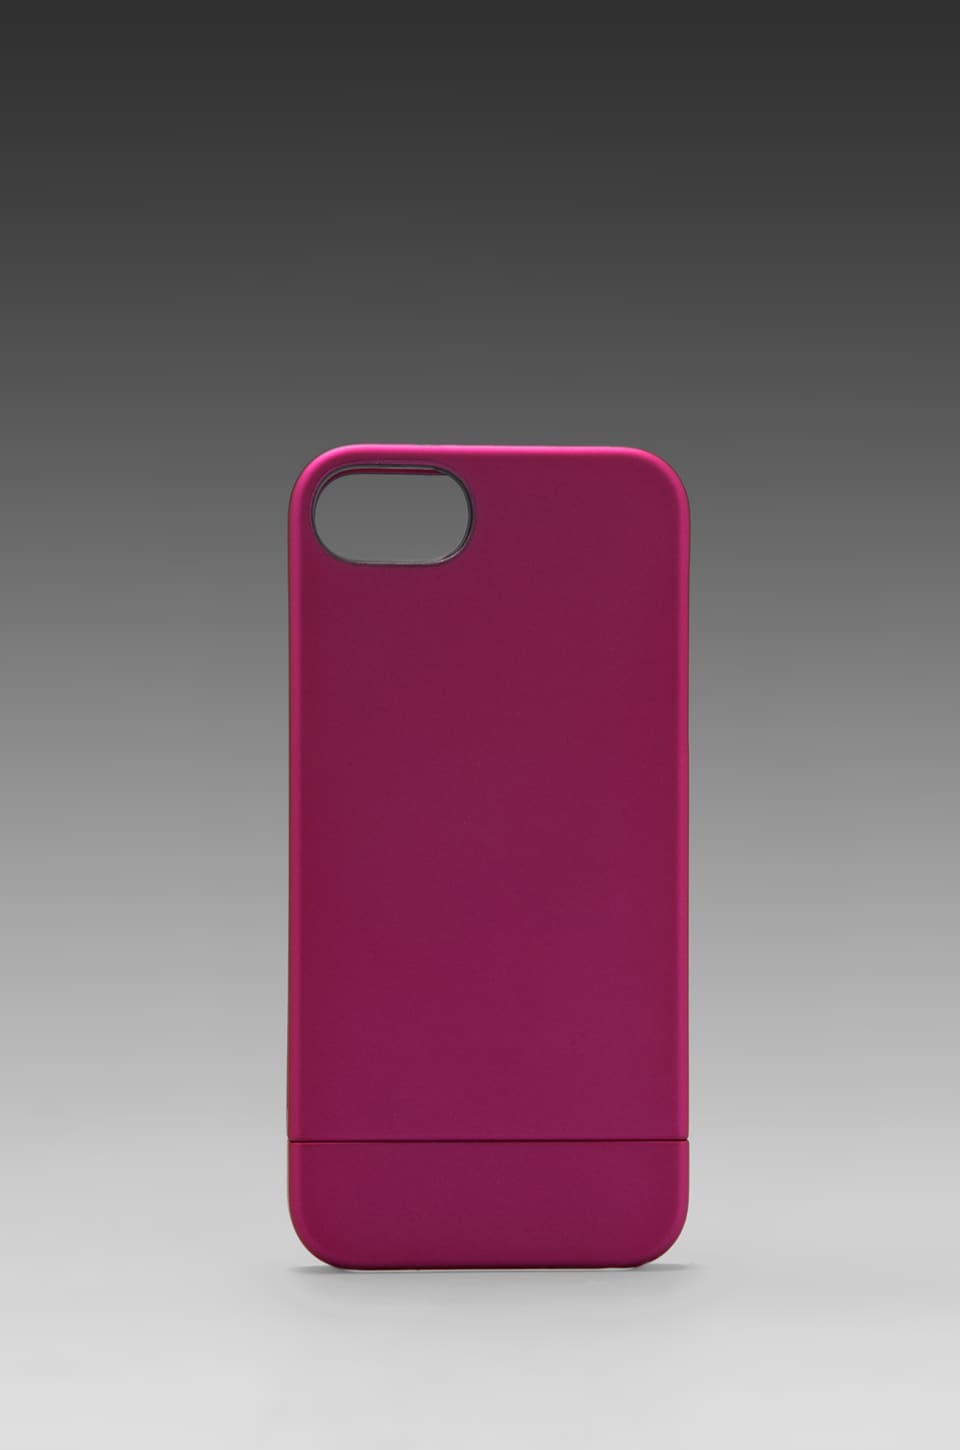 INCASE iPhone 5 Crystal Slider Case Snap Case in Pop Pink